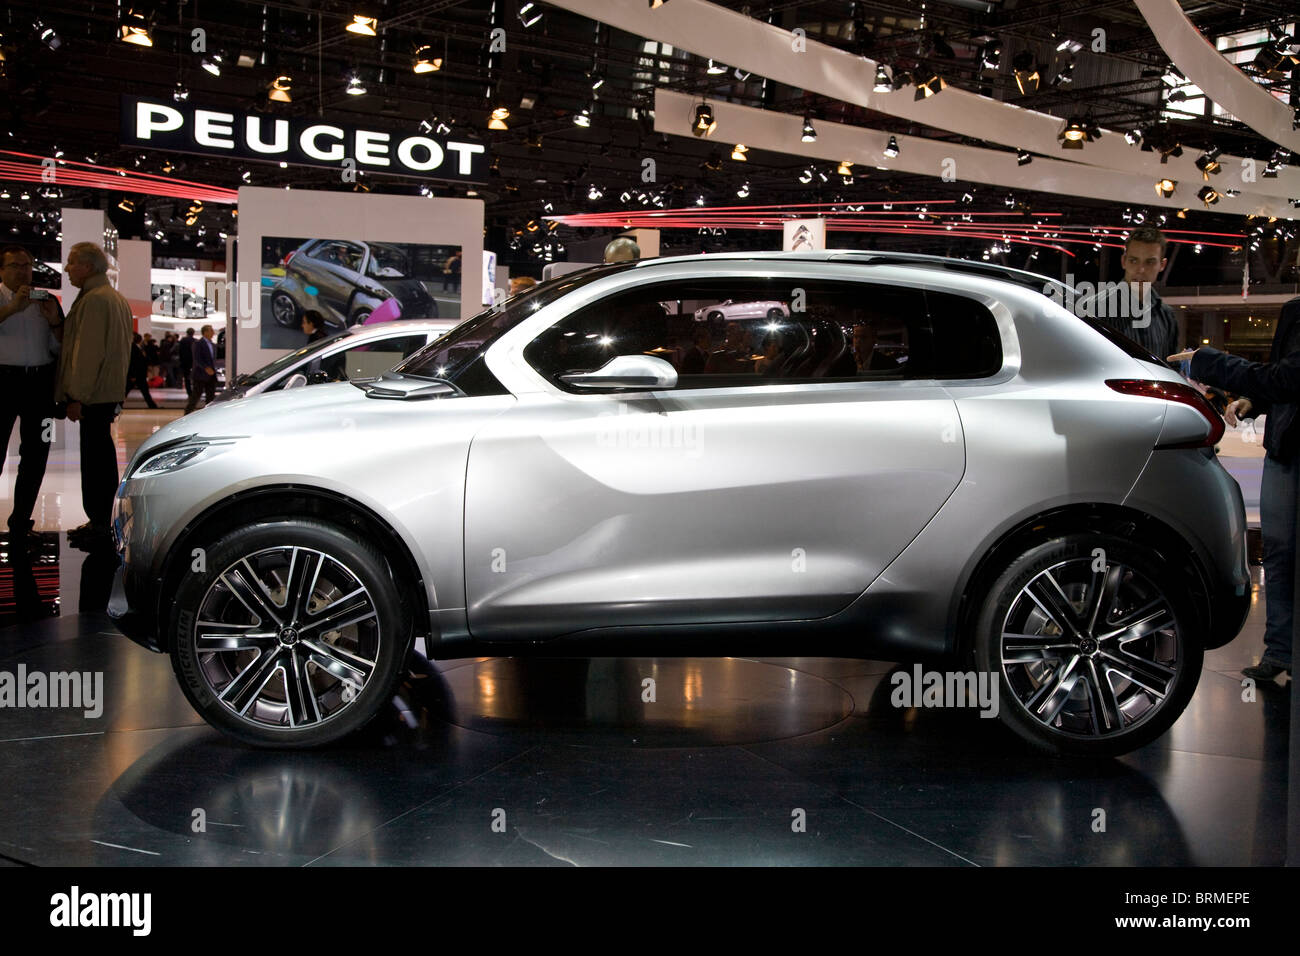 Paris motor show 2010 and the Peugeot HR1 - Stock Image